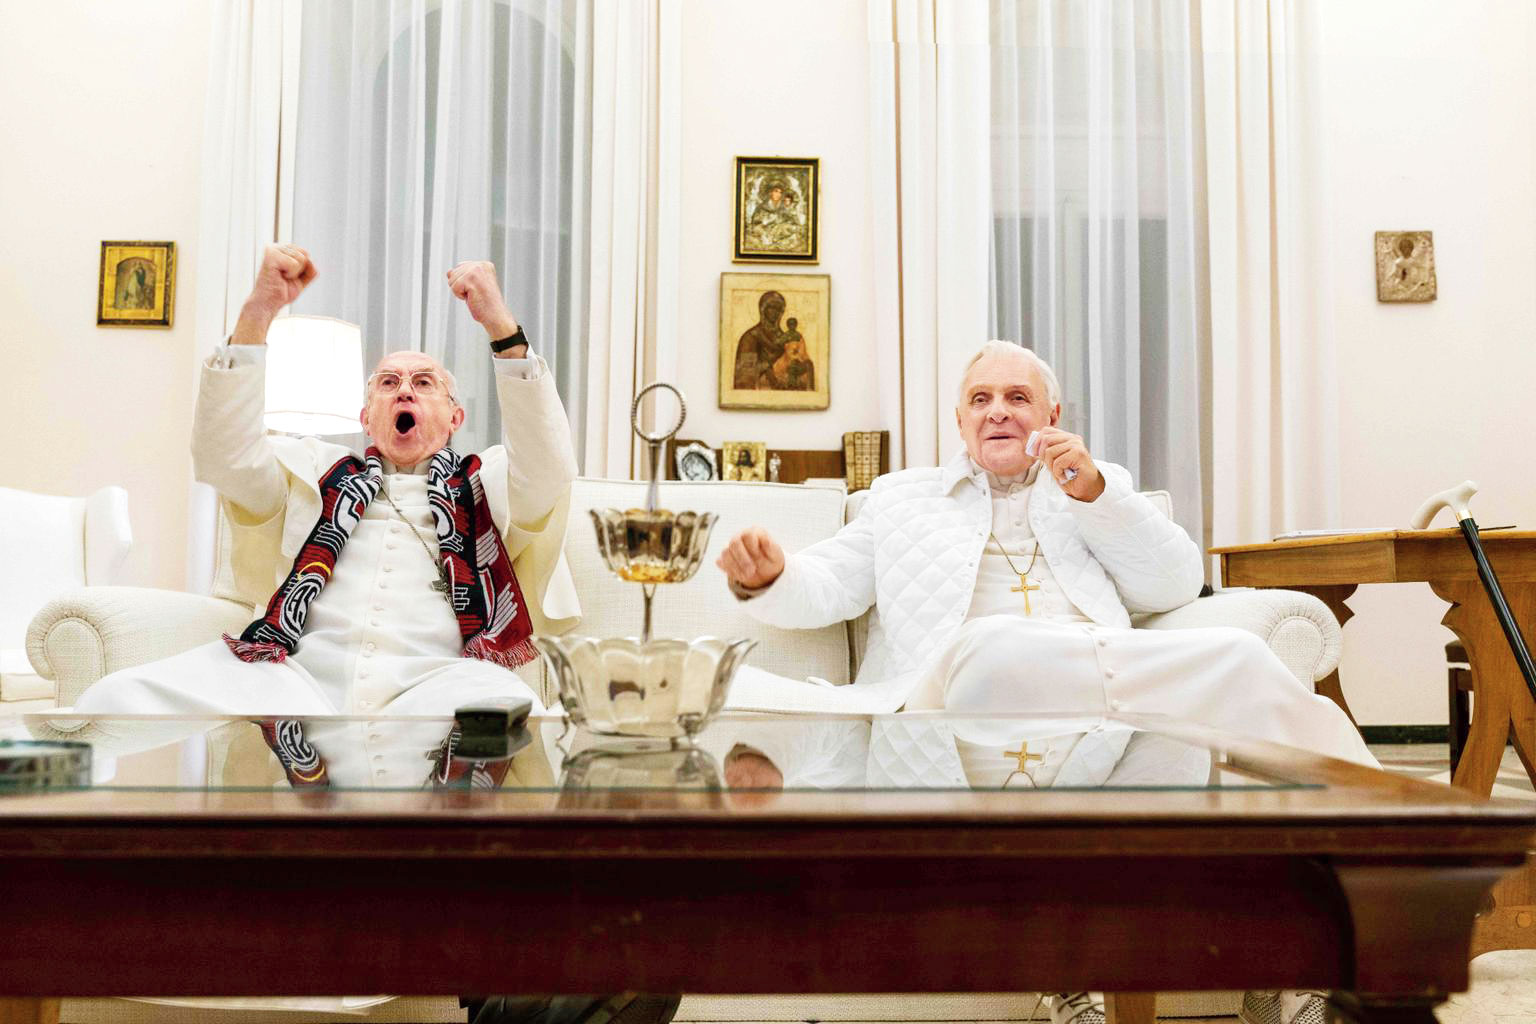 Jonathan Pryce and Anthony Hopkins in The Two Popes that releases in select theatres in November and streams on Netflix in December